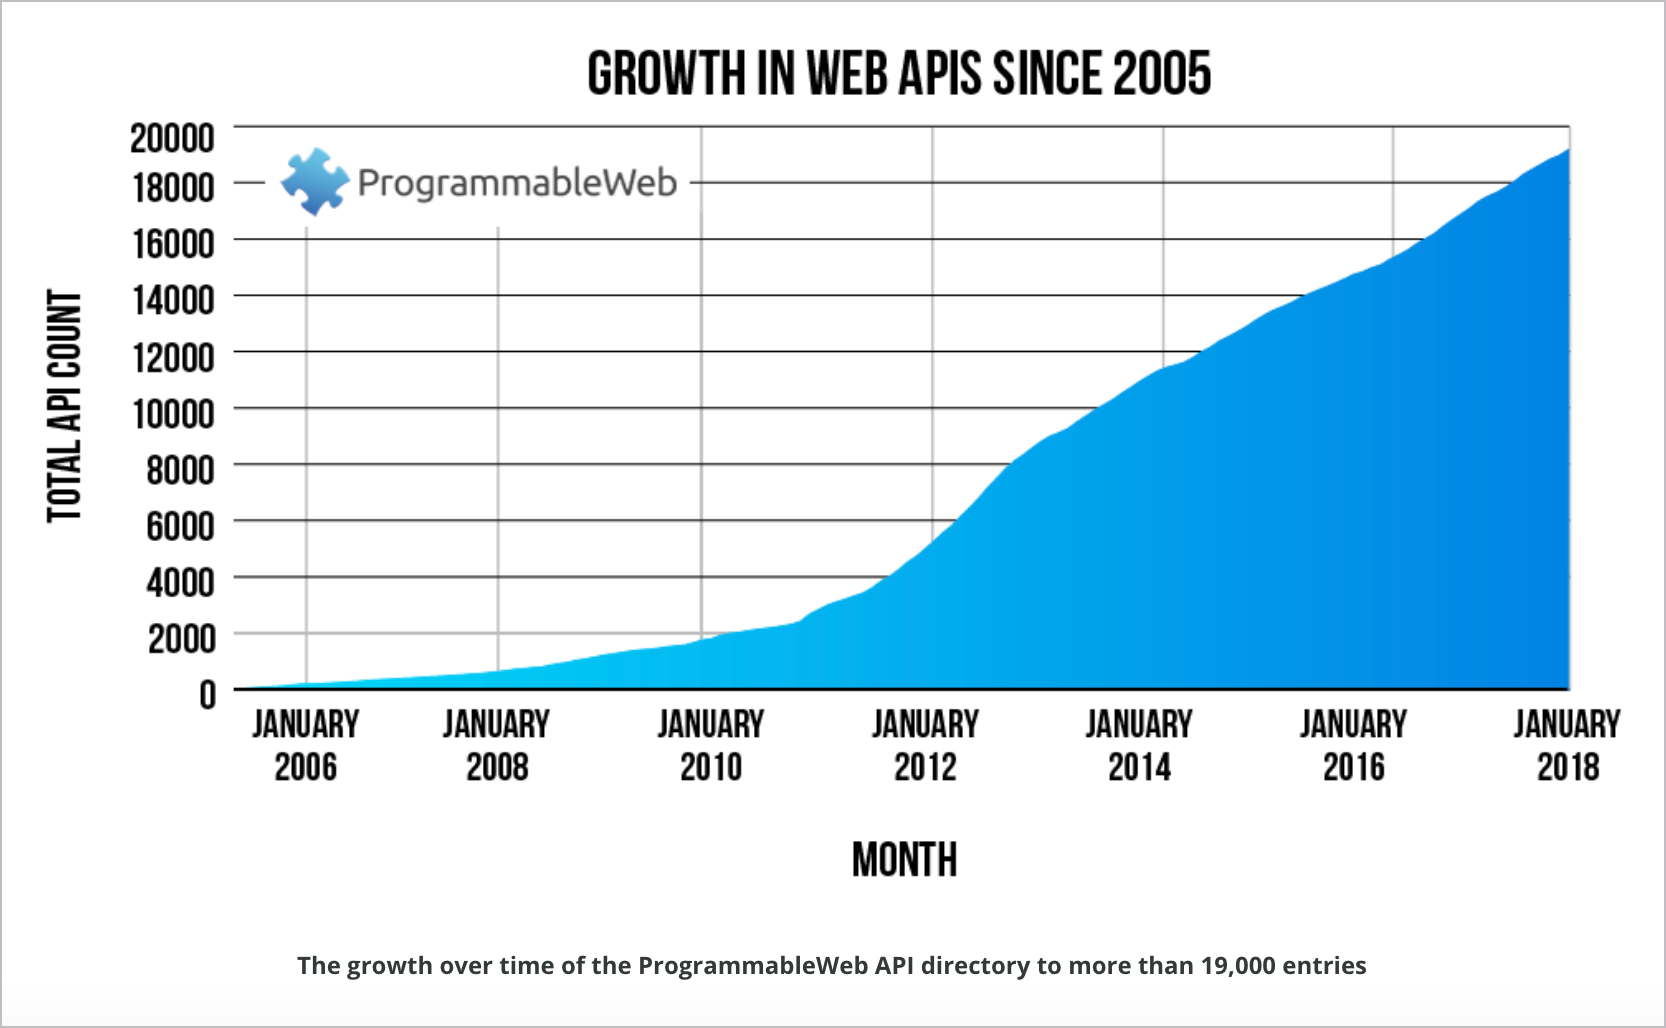 The phenomenal growth in web APIs